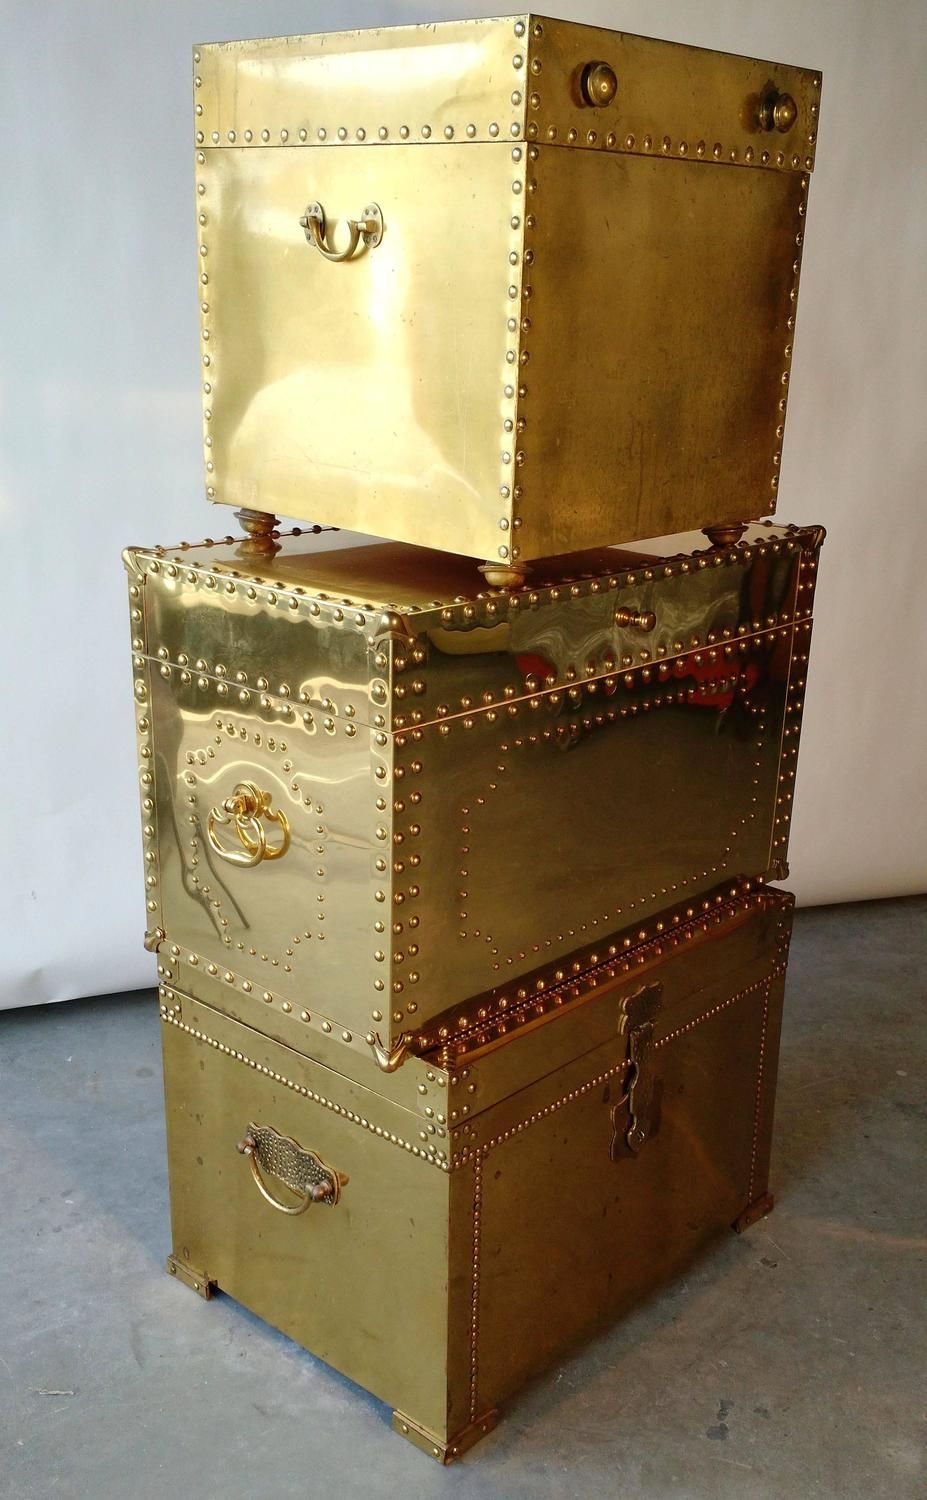 Collection of three vintage brass nailhead chests trunks hollywood for sale on whats better than a stack of vintage brass clad nailhead trunks could be lined up and used as a coffee table or side tables geotapseo Gallery